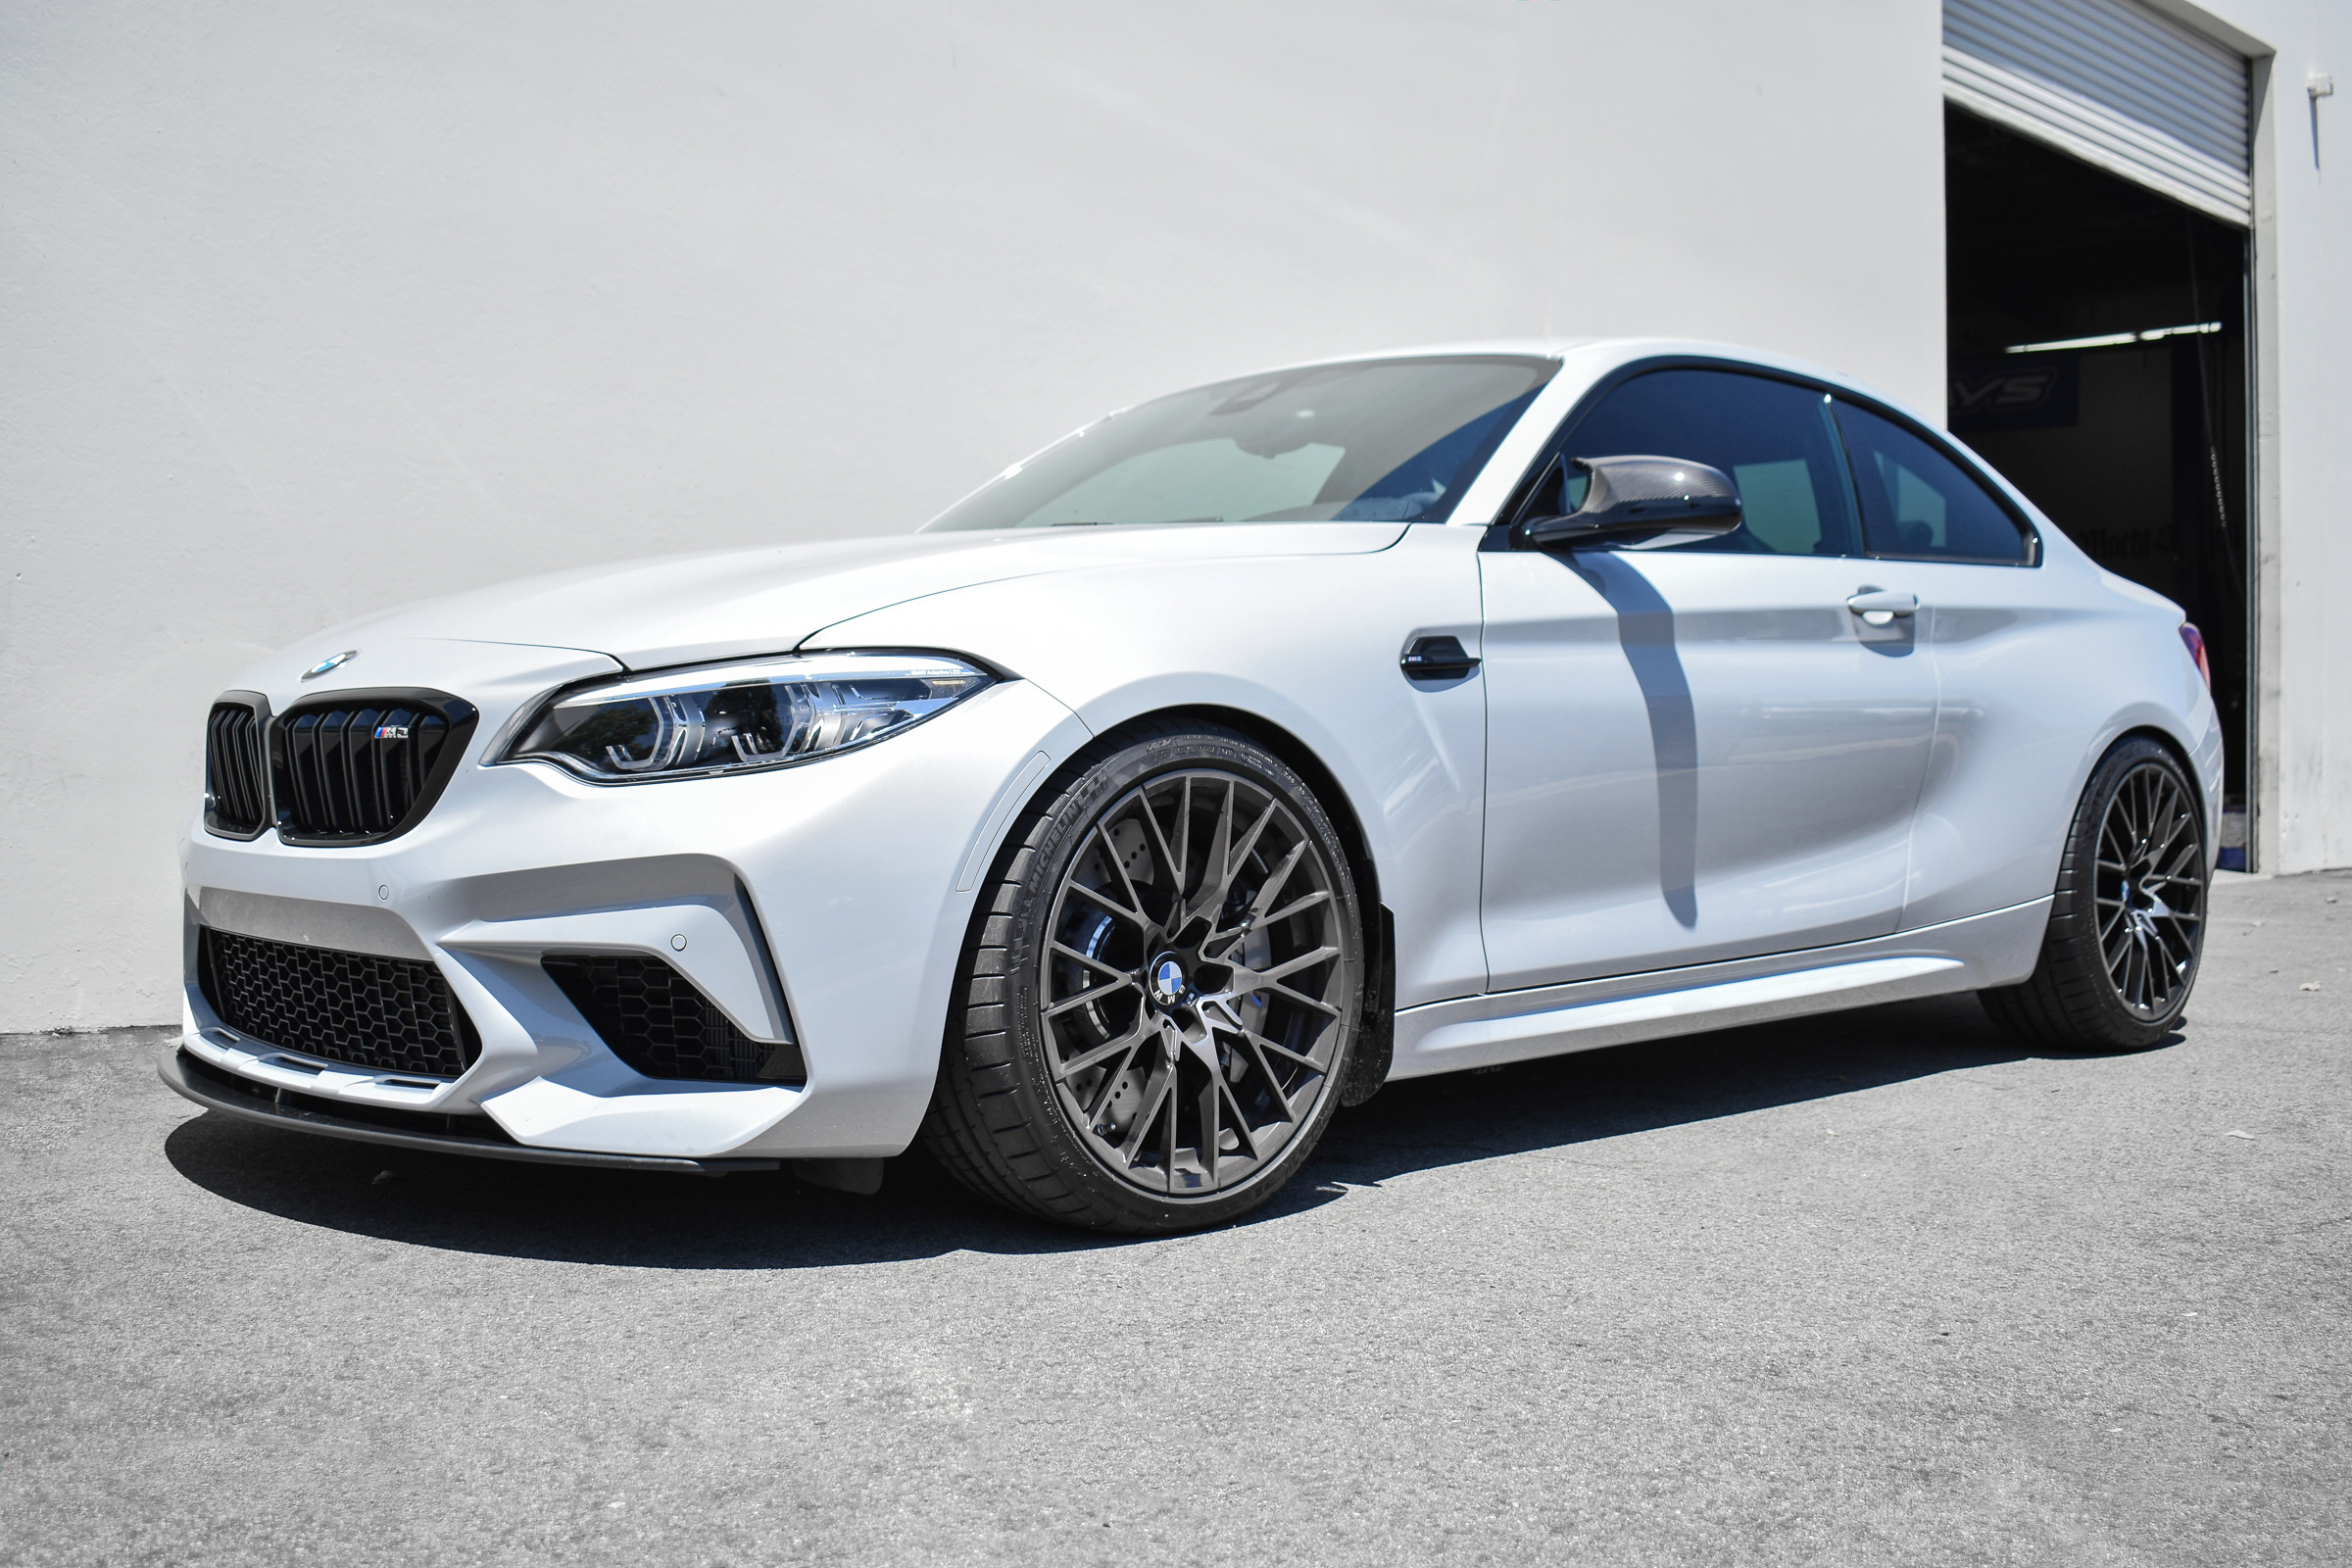 2018 Hockenheim Silver F87 M2 Competition - BMW M Performance Suspension & Lightweight Front Lip